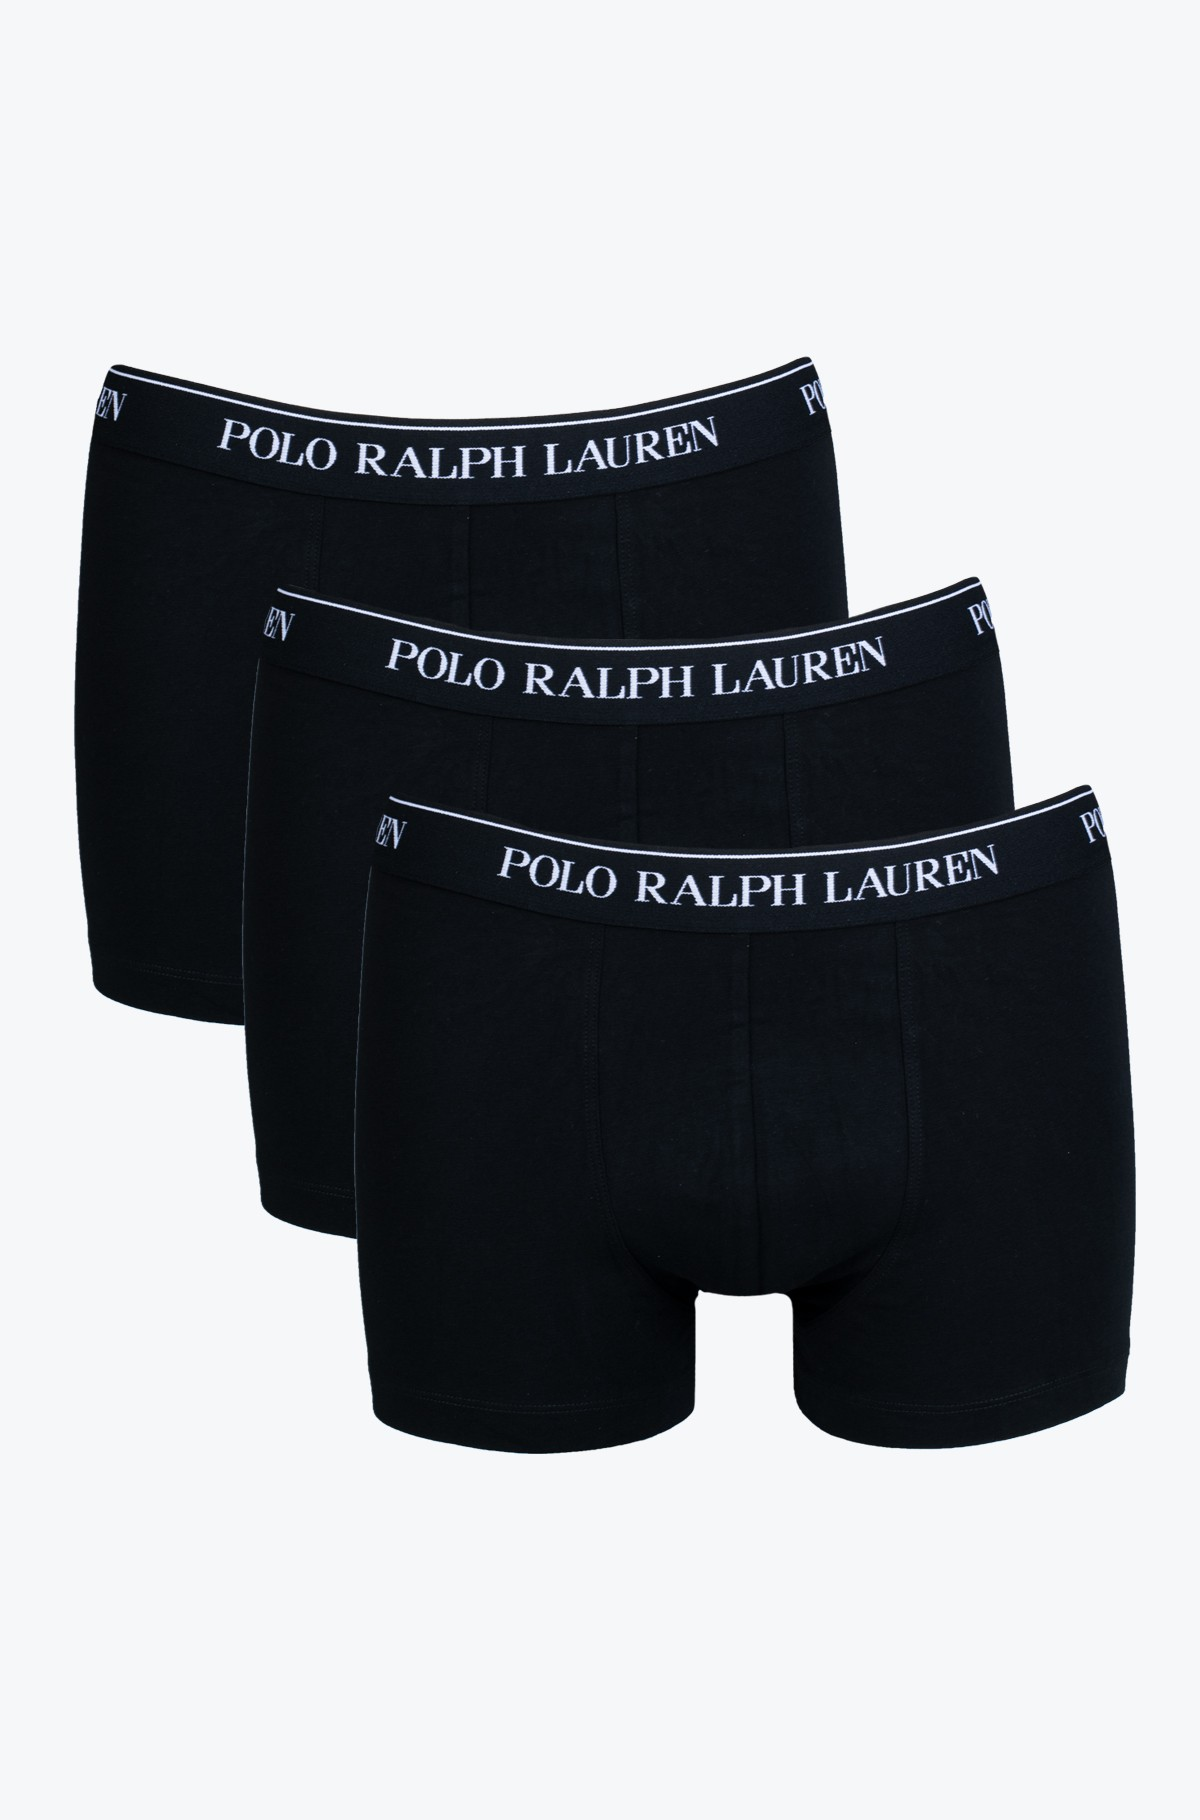 Three pairs of boxers 714513424002-full-1